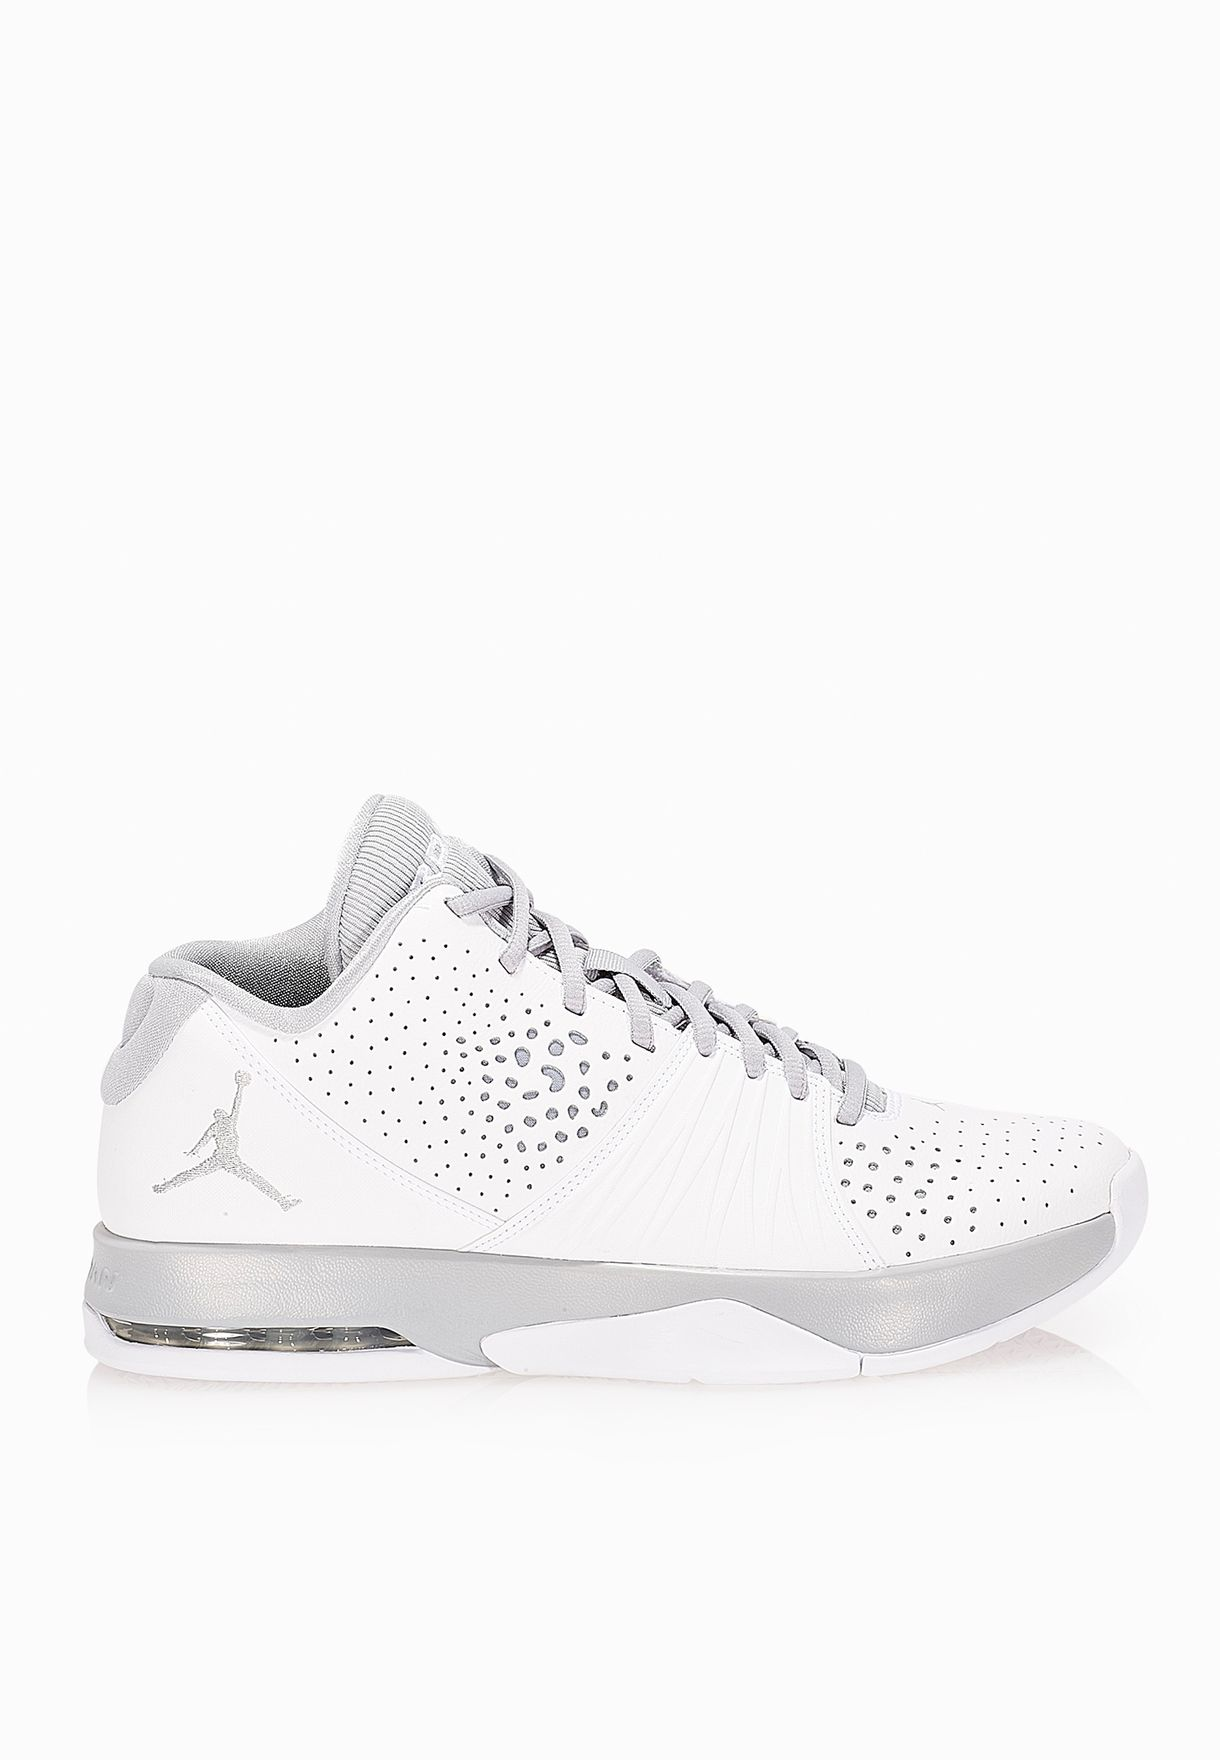 302e8320c9c Shop Nike white Jordan 5 AM 807546-100 for Men in Kuwait - NI727SH65SDE